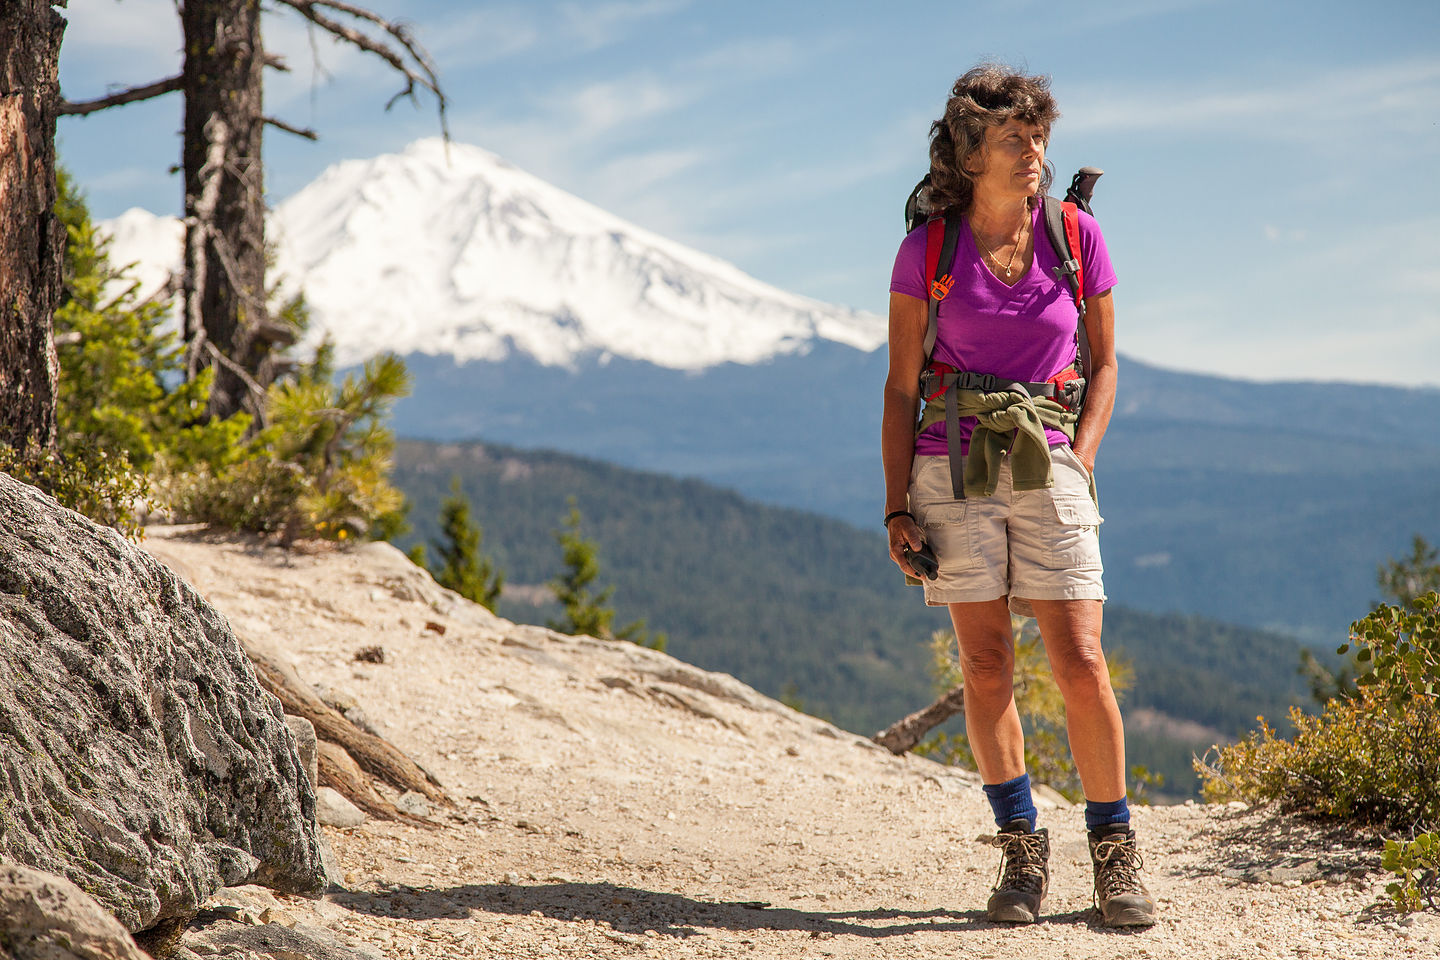 Lolo on Crags Trail and Mount Shasta